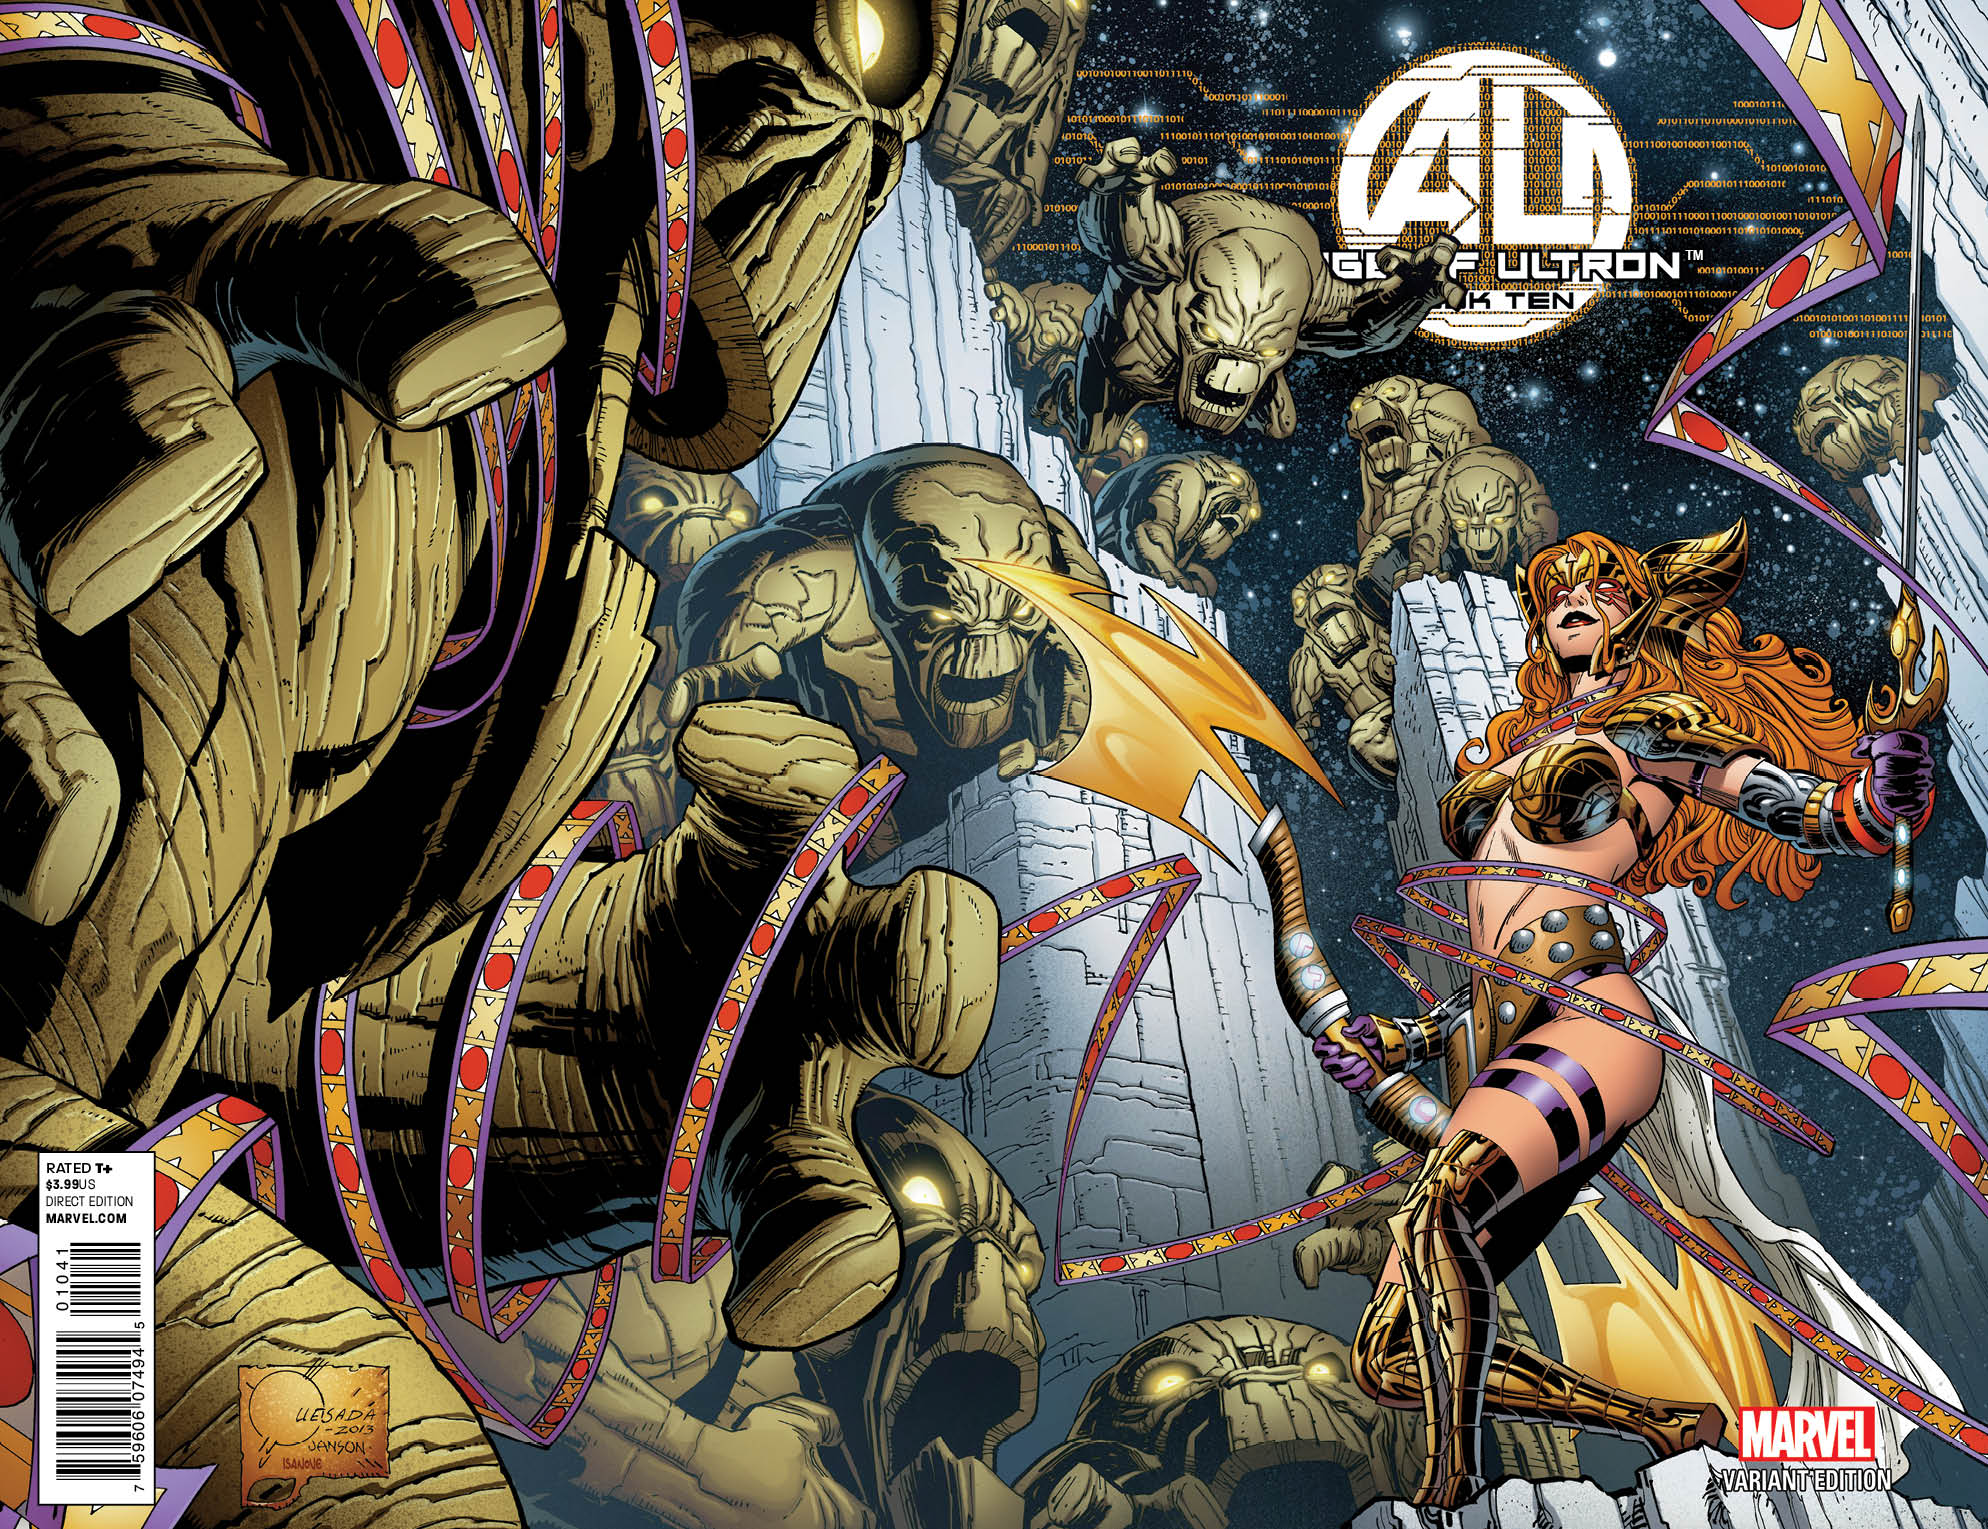 The Avengers Age of Ultron comics marvel movie f wallpaper background 1988x1529